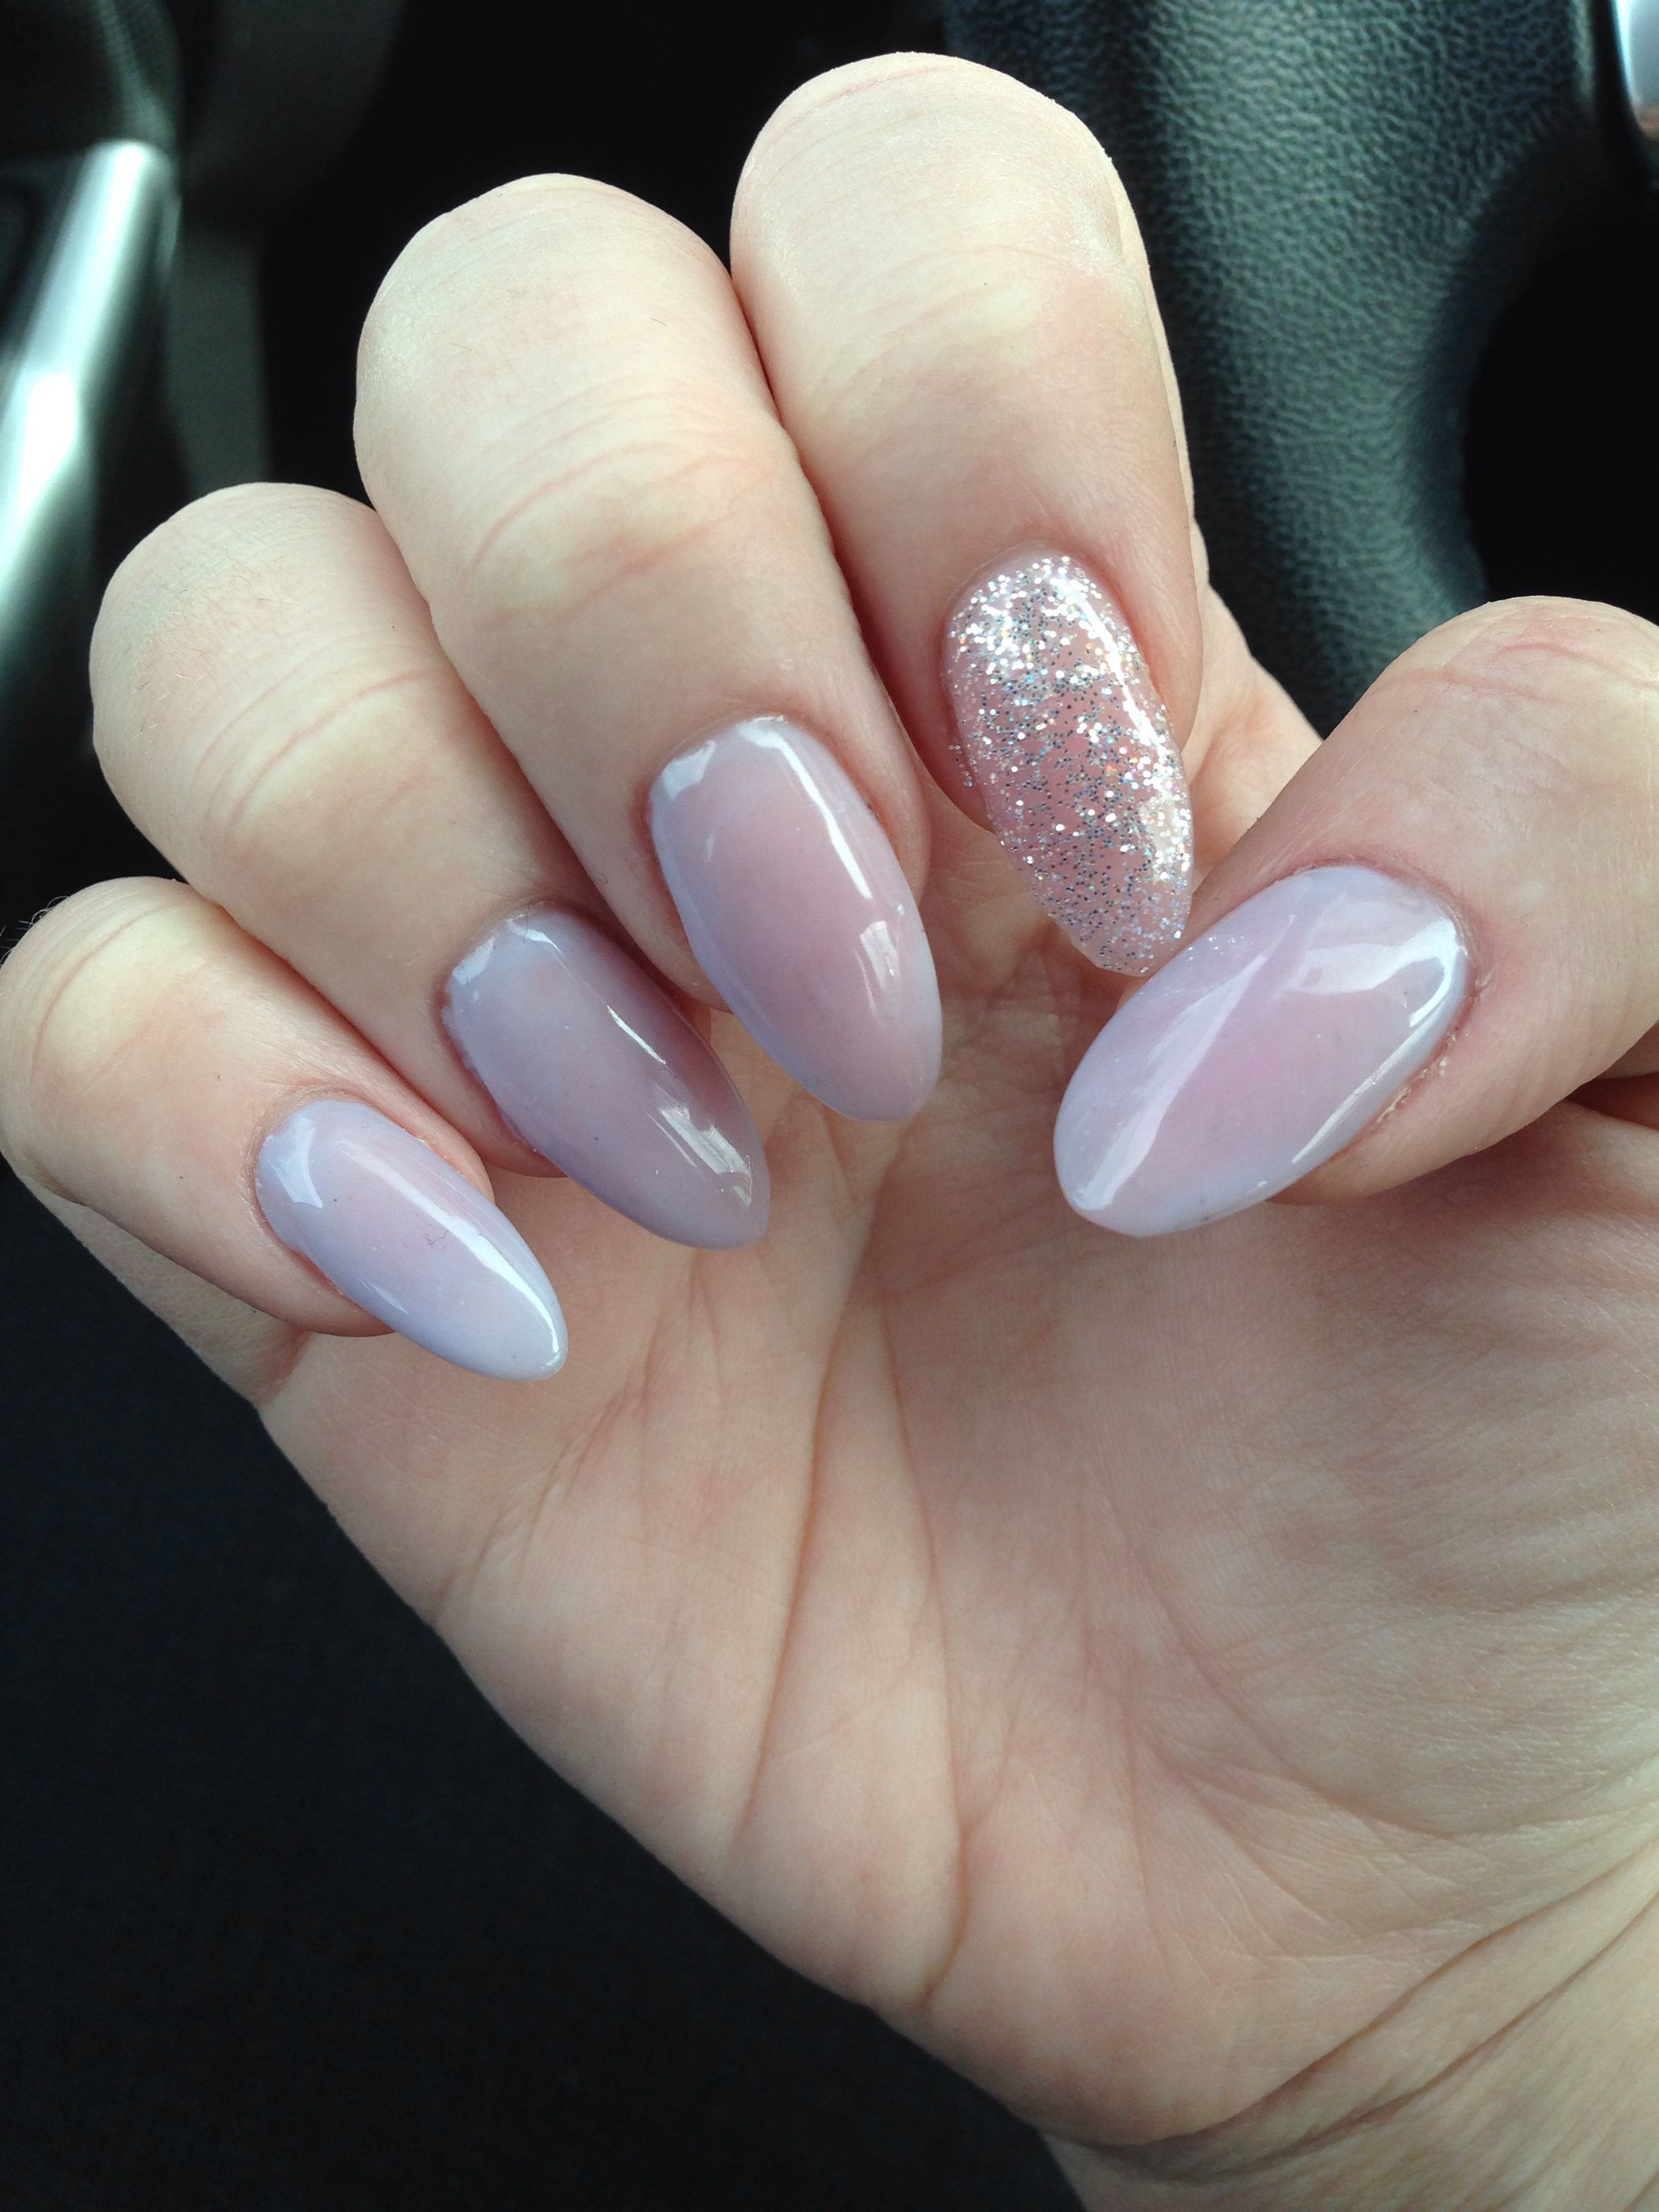 Pale Lavender Almond Gel Nails With Glitter Accent Nail My Nails